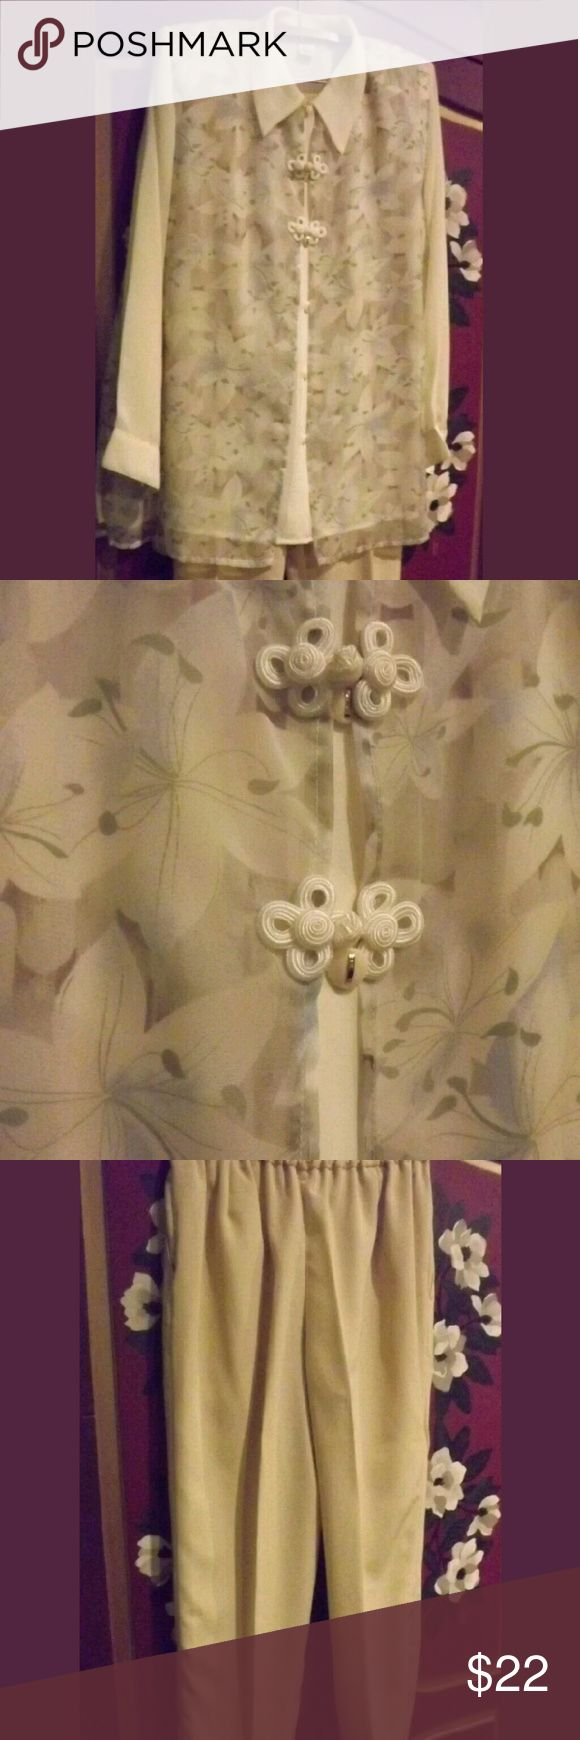 """Pants Suit by MERMAID Sz L Gorgeous! This is a gorgeous pants suit for either mother of the bride or Sunday brunch with the girls. It is 100% polyester and very flattering in design. The top is a bit sheer but has two layers of fabric...top one is floral and underside is solid ivory color. Bust measures 42"""" and hips are 43-44""""...pants measure 28"""" in waist (has a flat panel in front of waist with zipper and elasticized in back) without stretching the elastic. The inseam is 28"""" but has 2"""" hem…"""